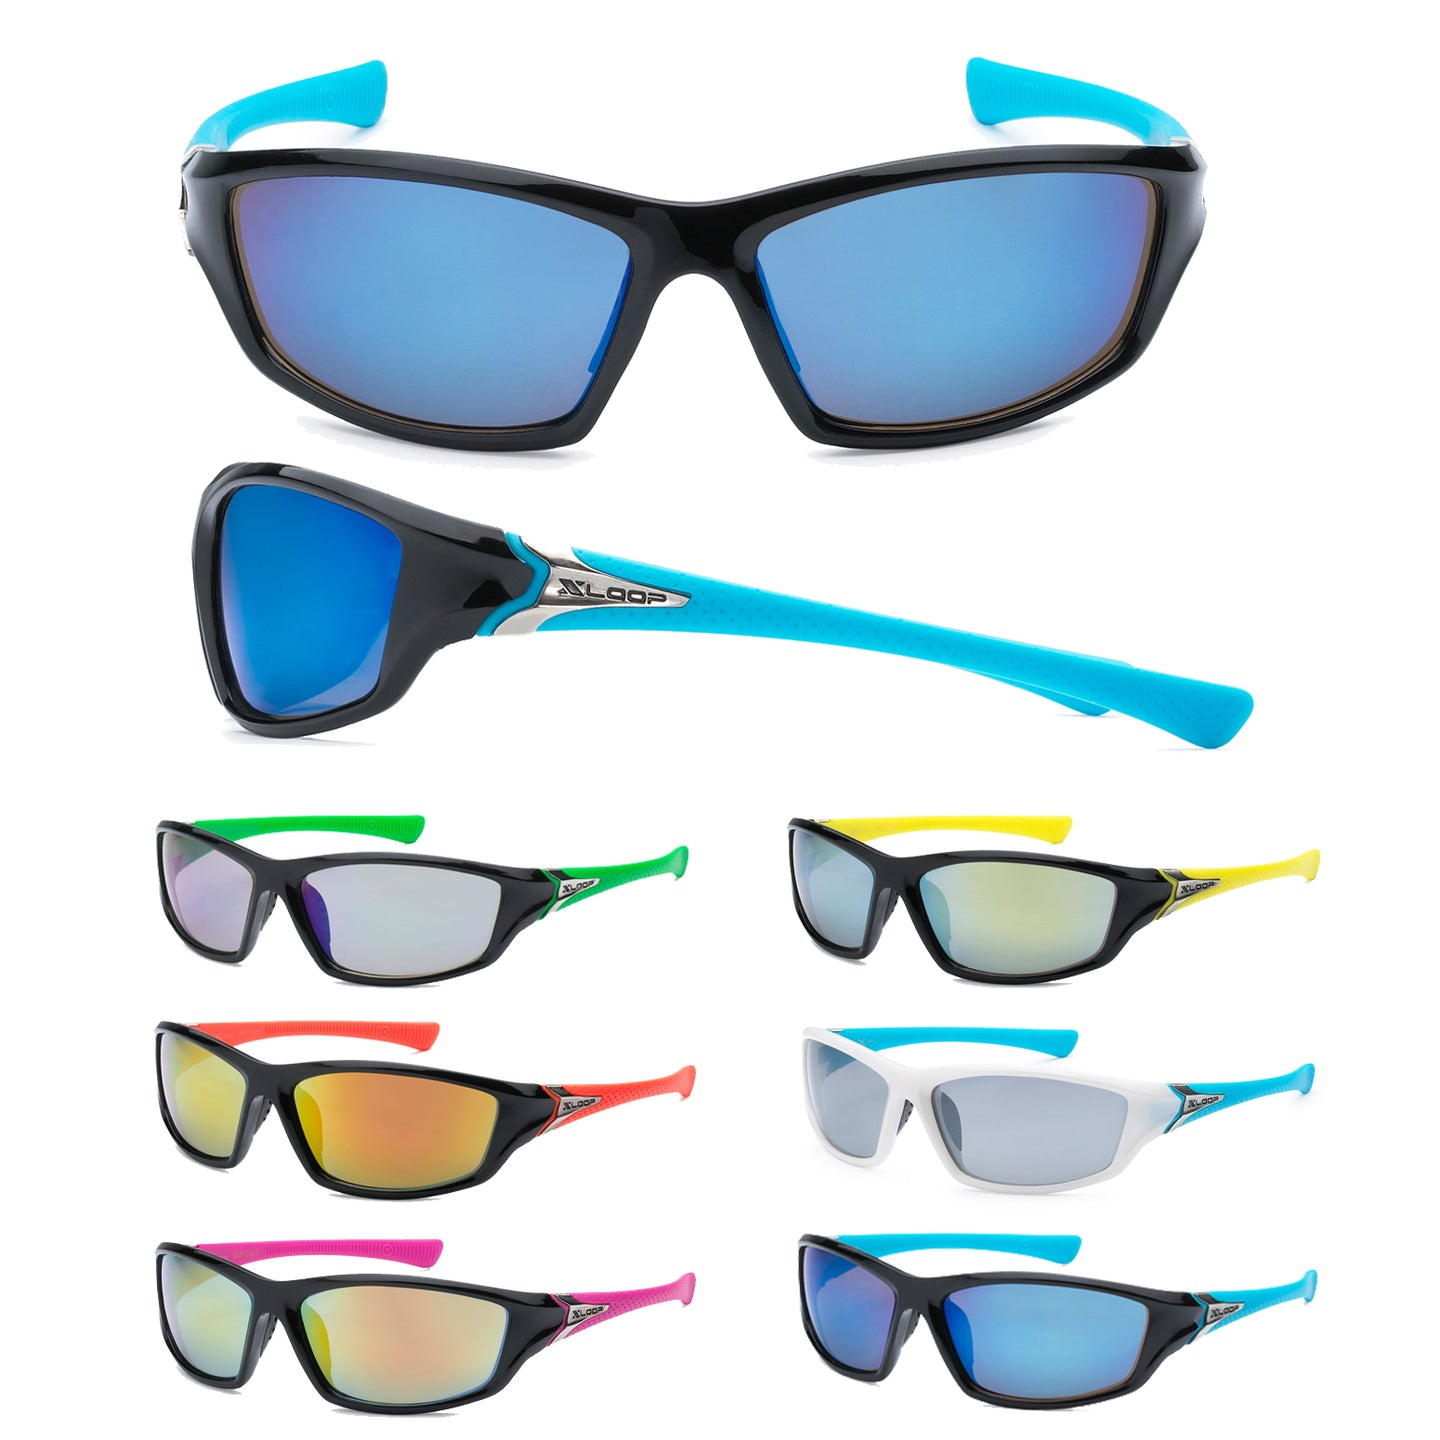 Mens Wholesale Wrap Sport Revo Lens Two Toned Frame Sunglasses 1 Dozen 8X2420 - BuyWholesaleSunglasses.com